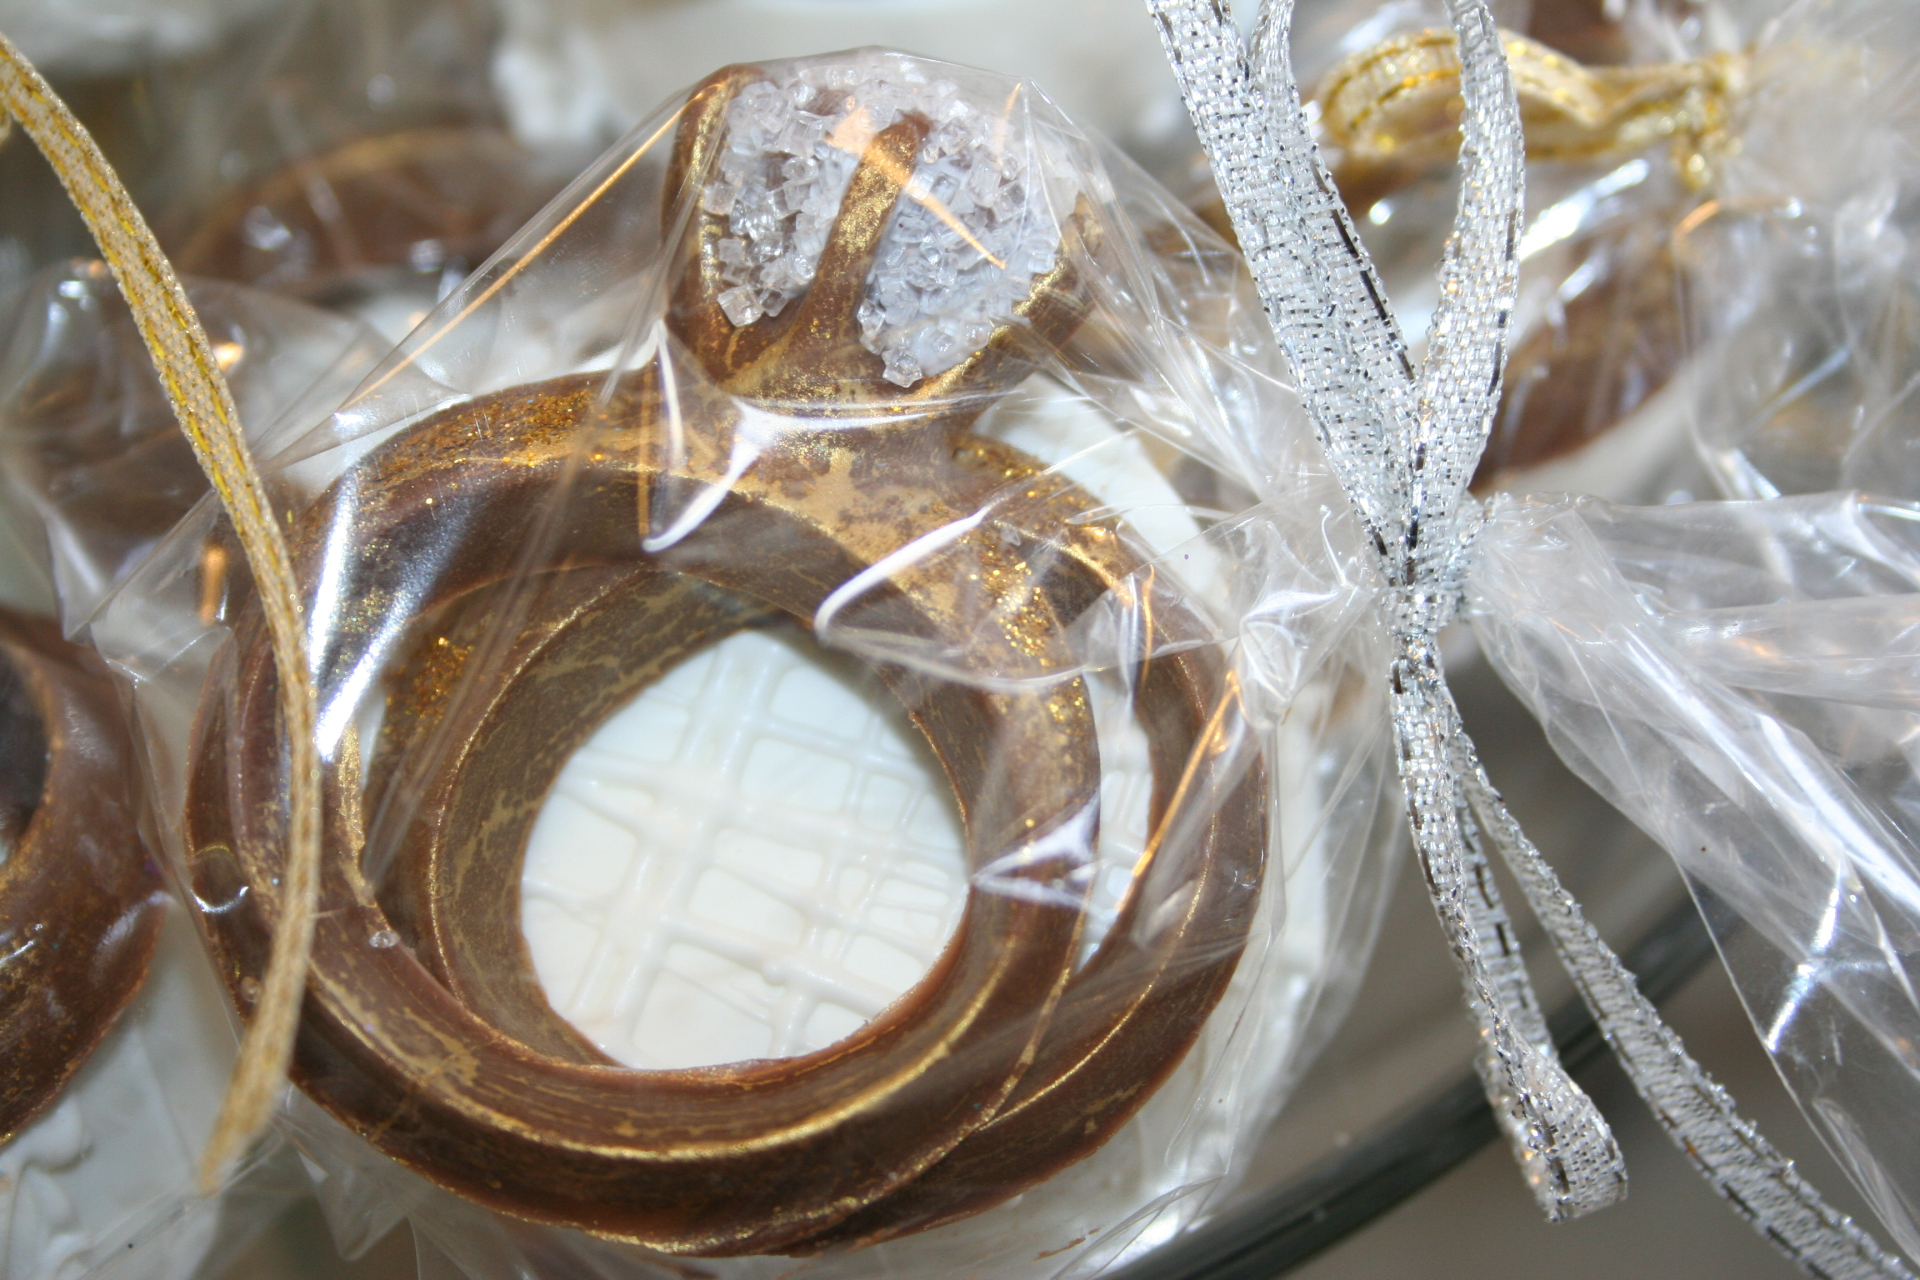 Festive Treats and Favors